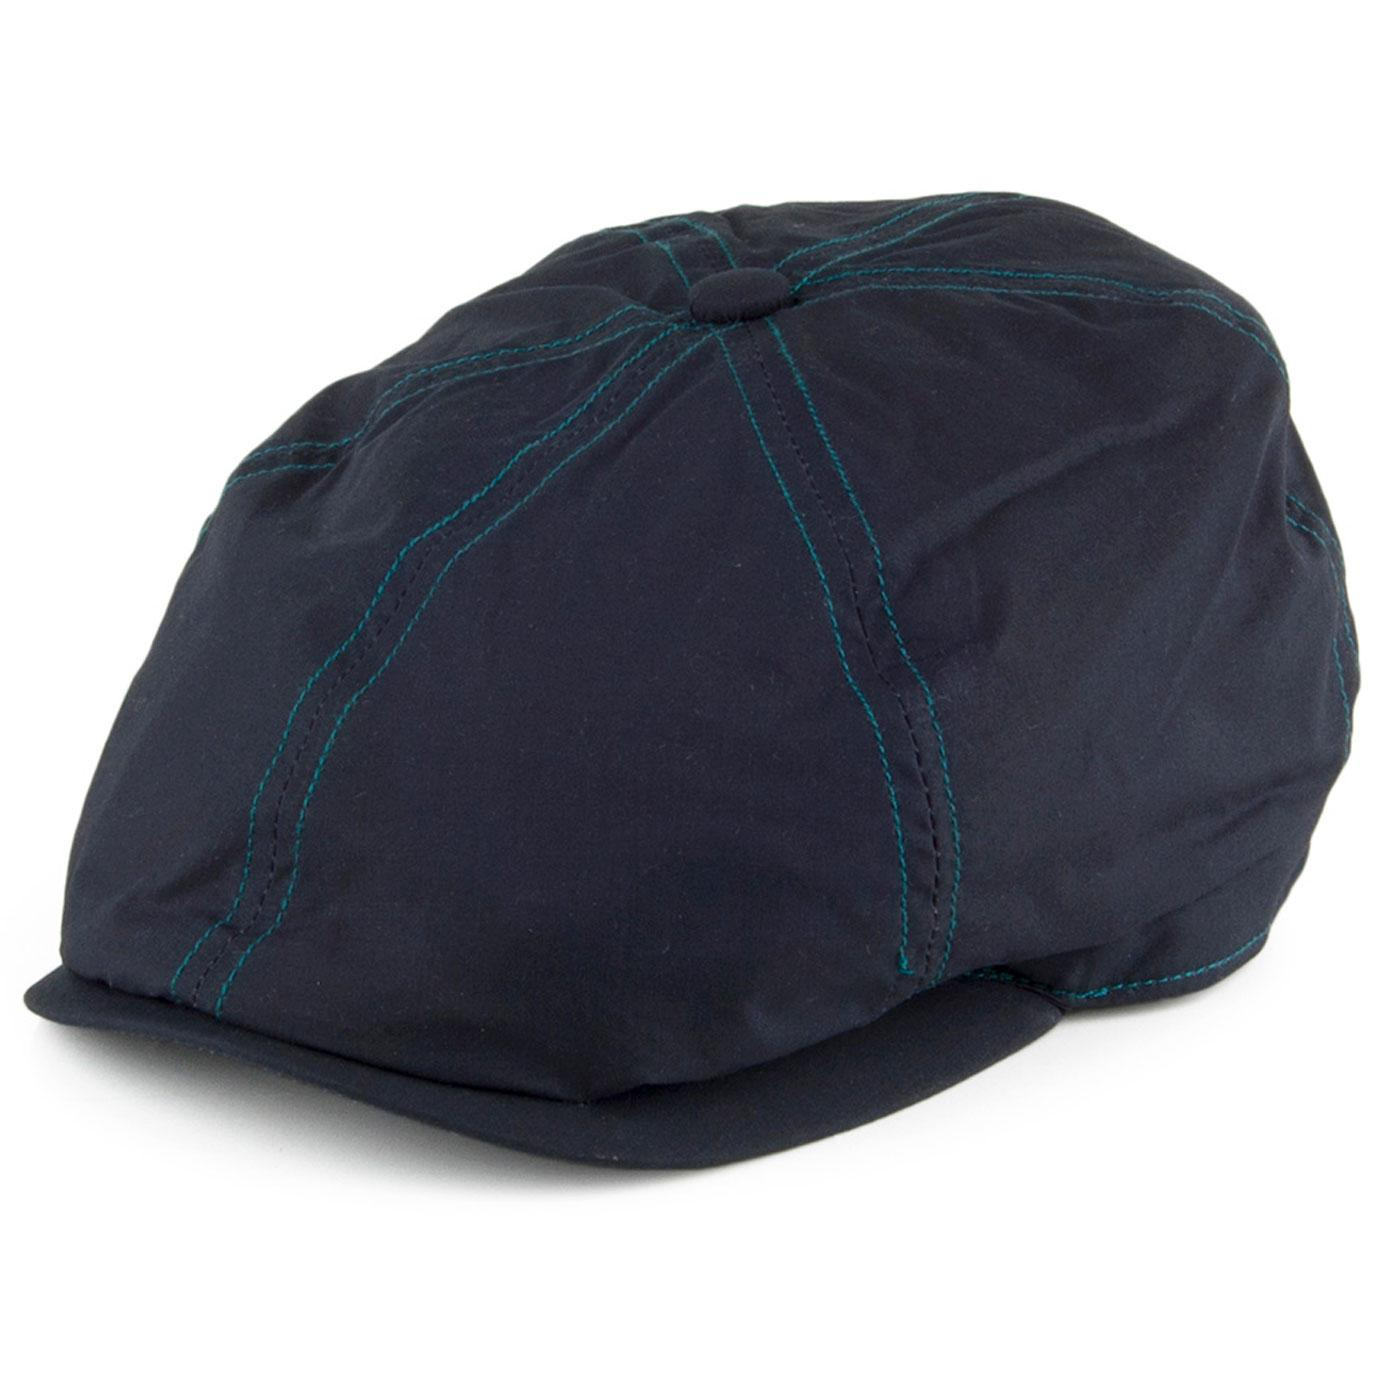 FAILSWORTH Hudson Dry Wax 6 Panel Newsboy Cap NAVY